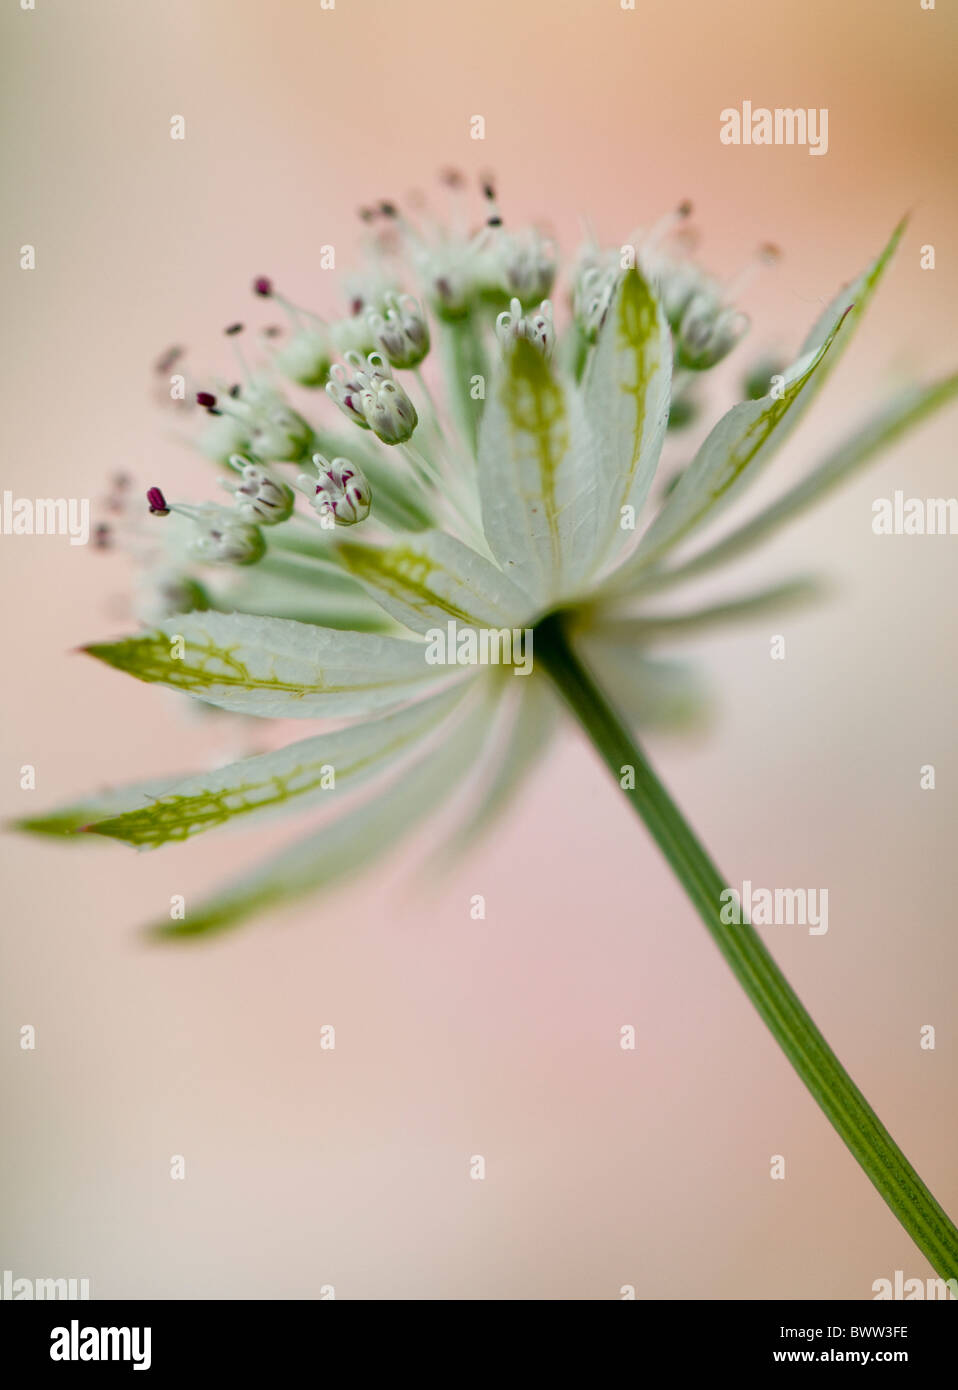 A single flower head of Astrantia major 'Large white' - Masterwort - Stock Image